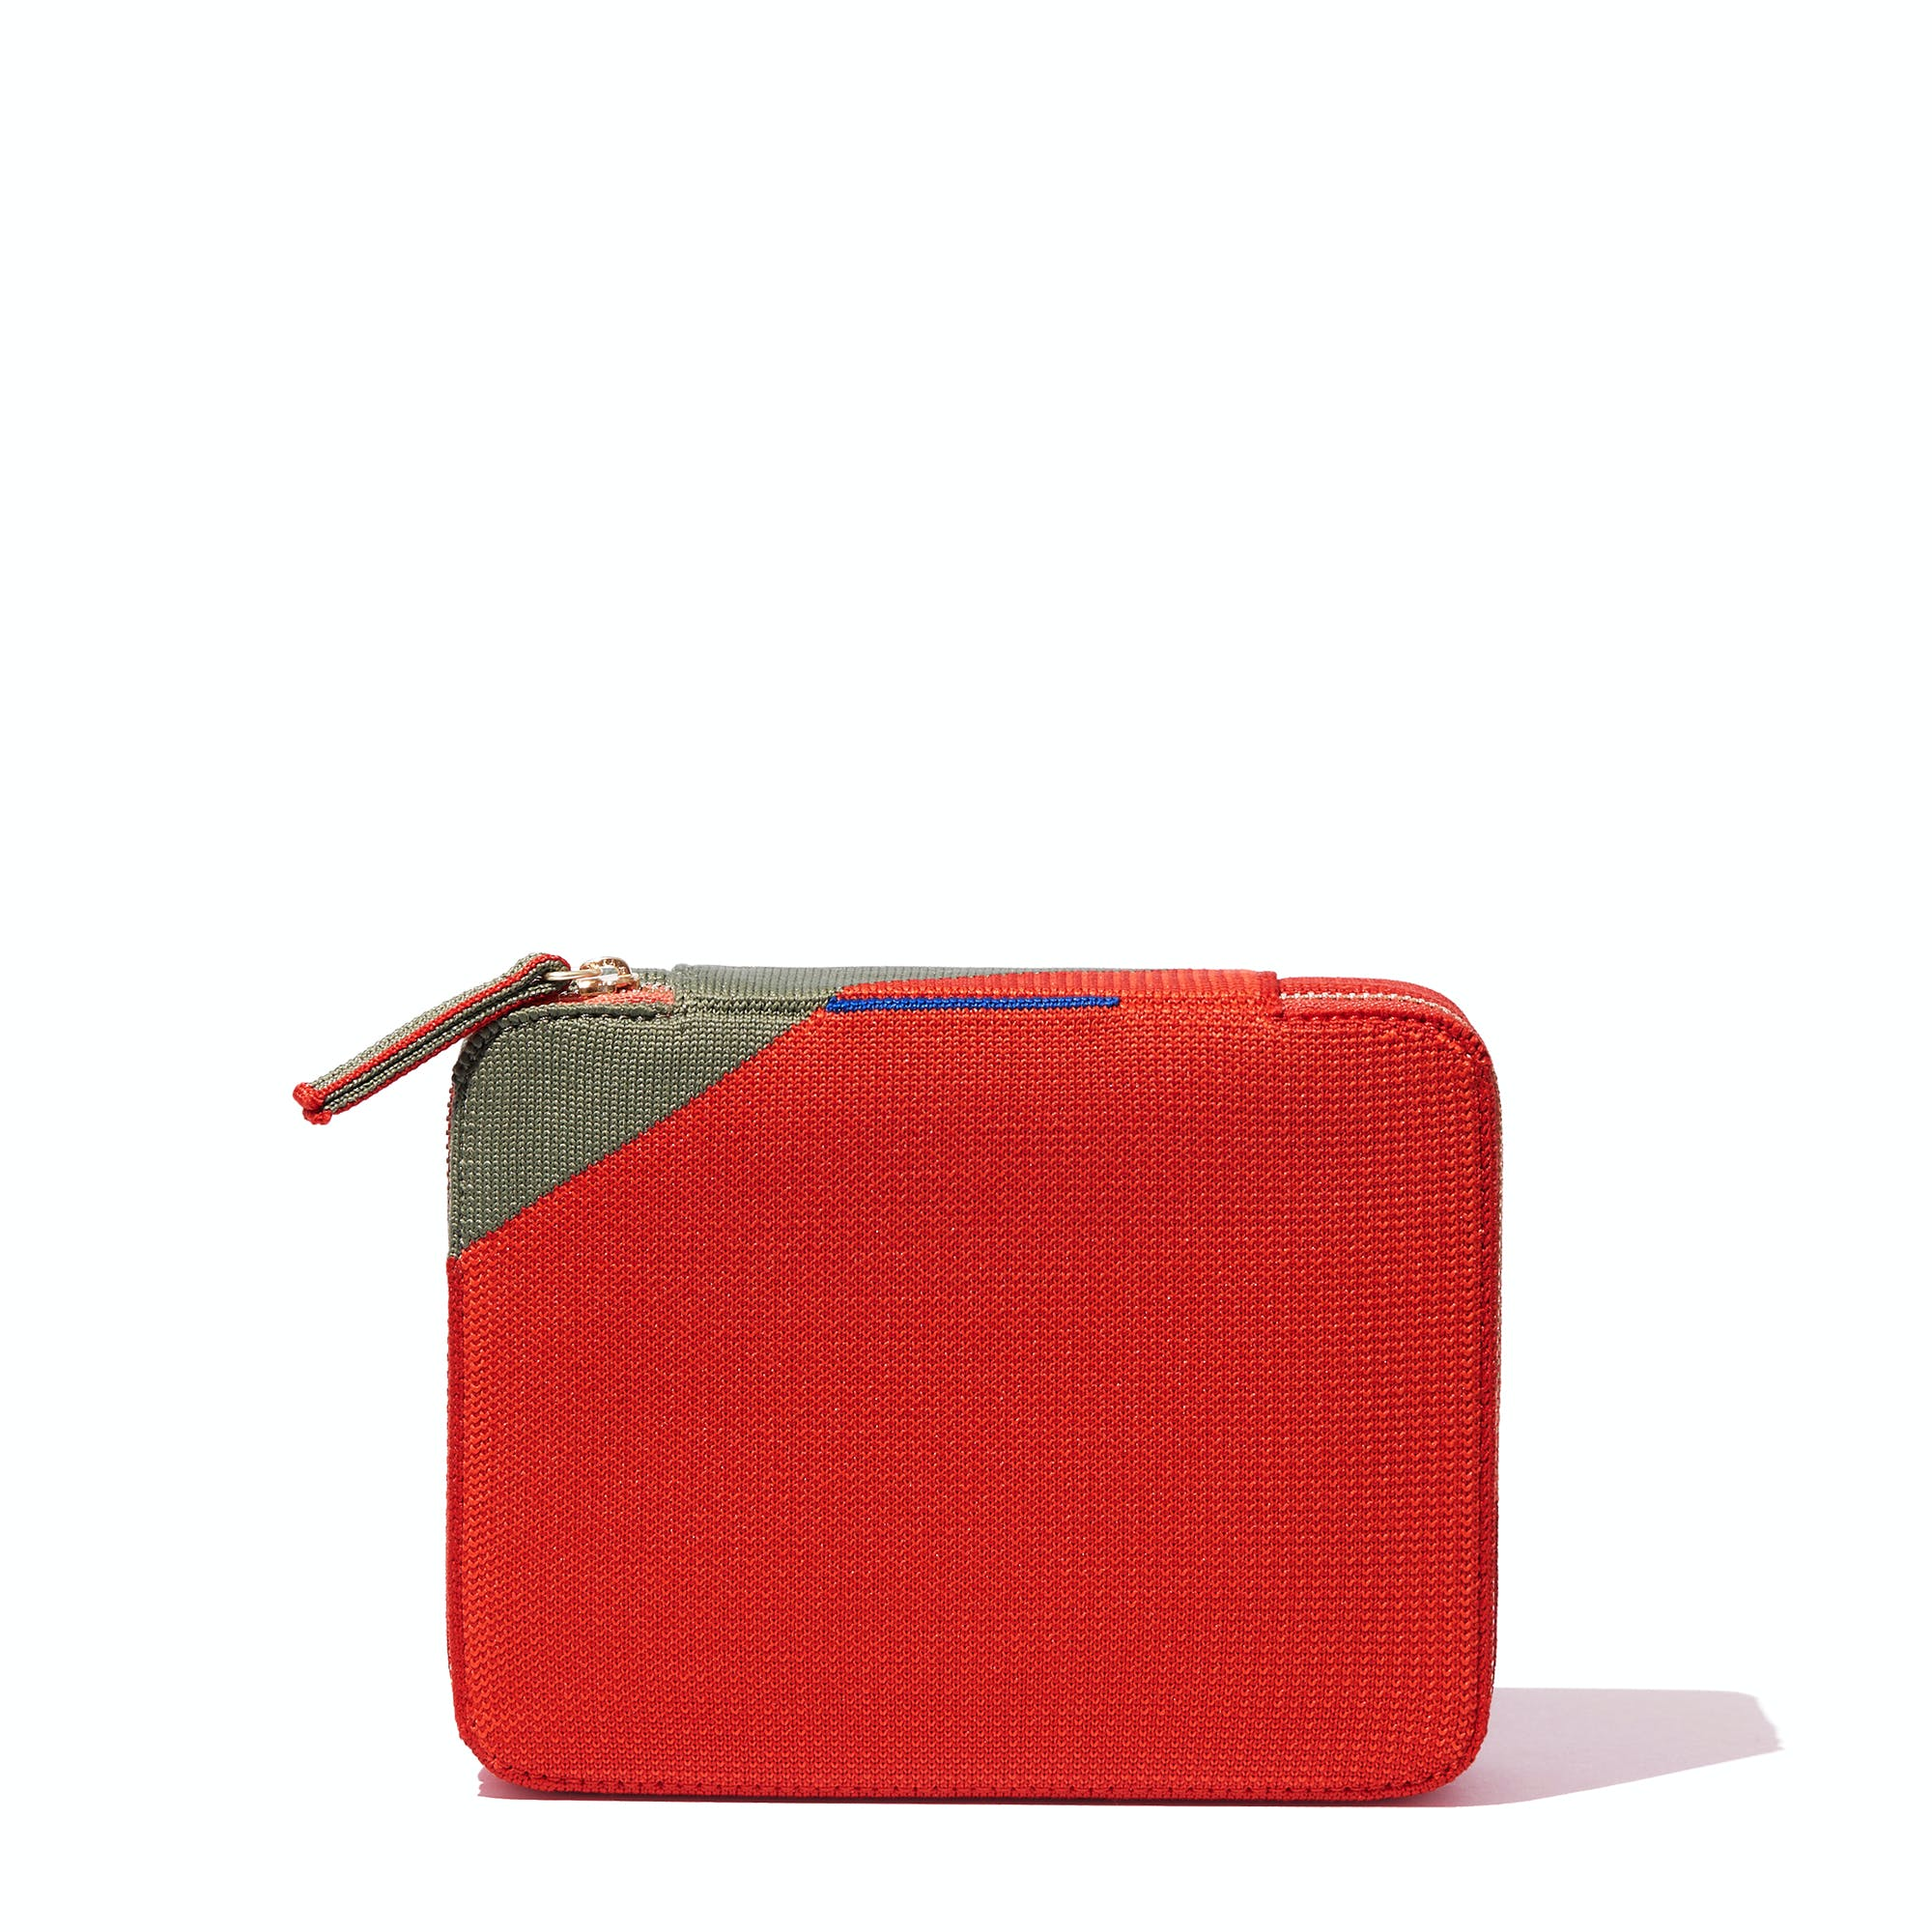 The Mid Catchall in Bright Poppy shown from the front.